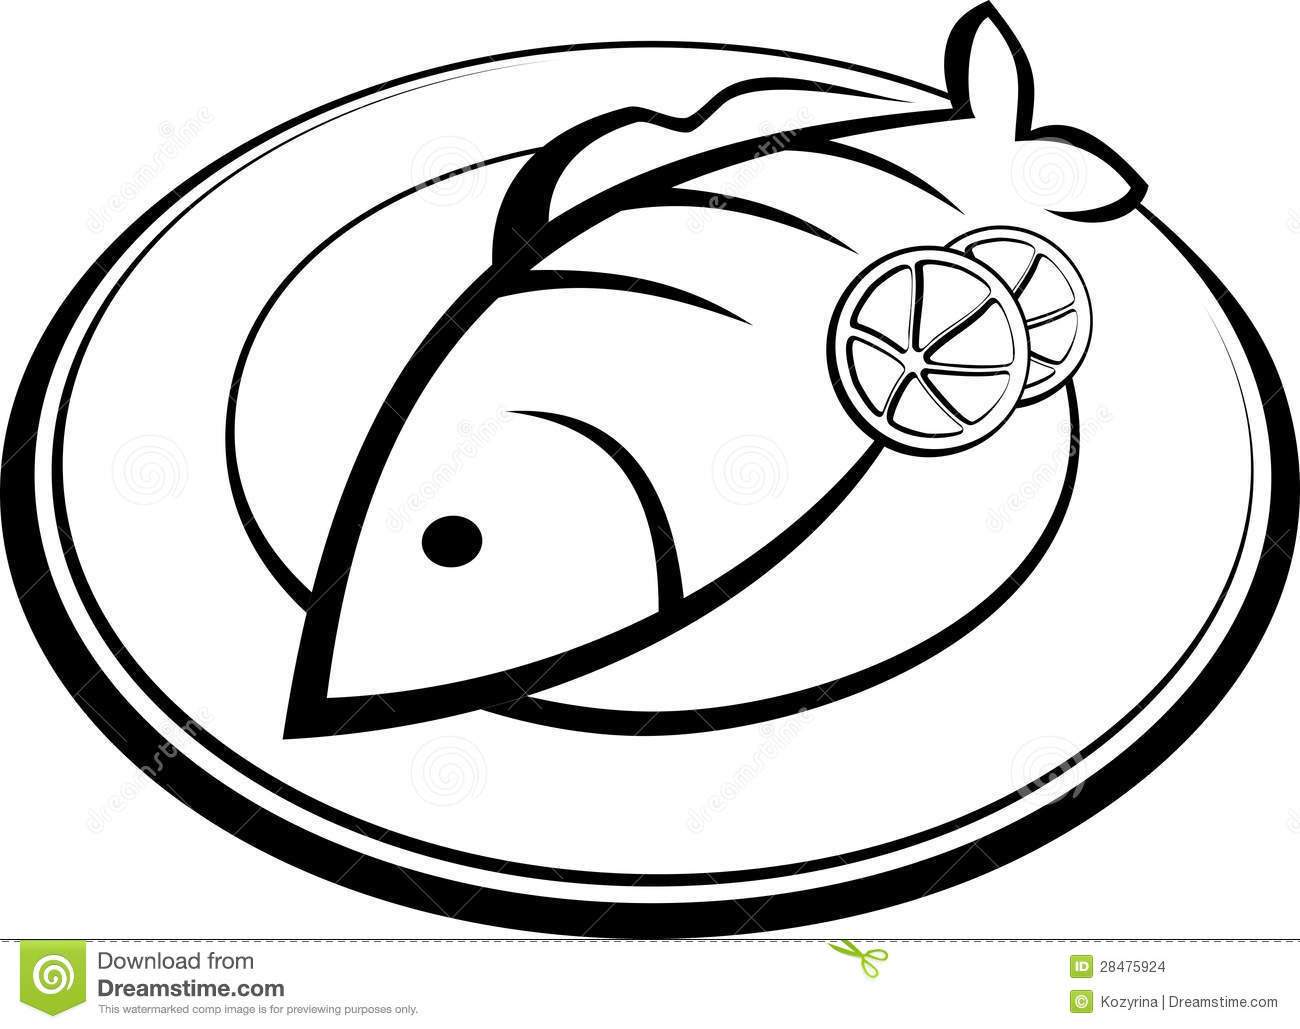 Dinner Clipart Black And White | Free download best Dinner Clipart ... for Beef Clipart Black And White  545xkb